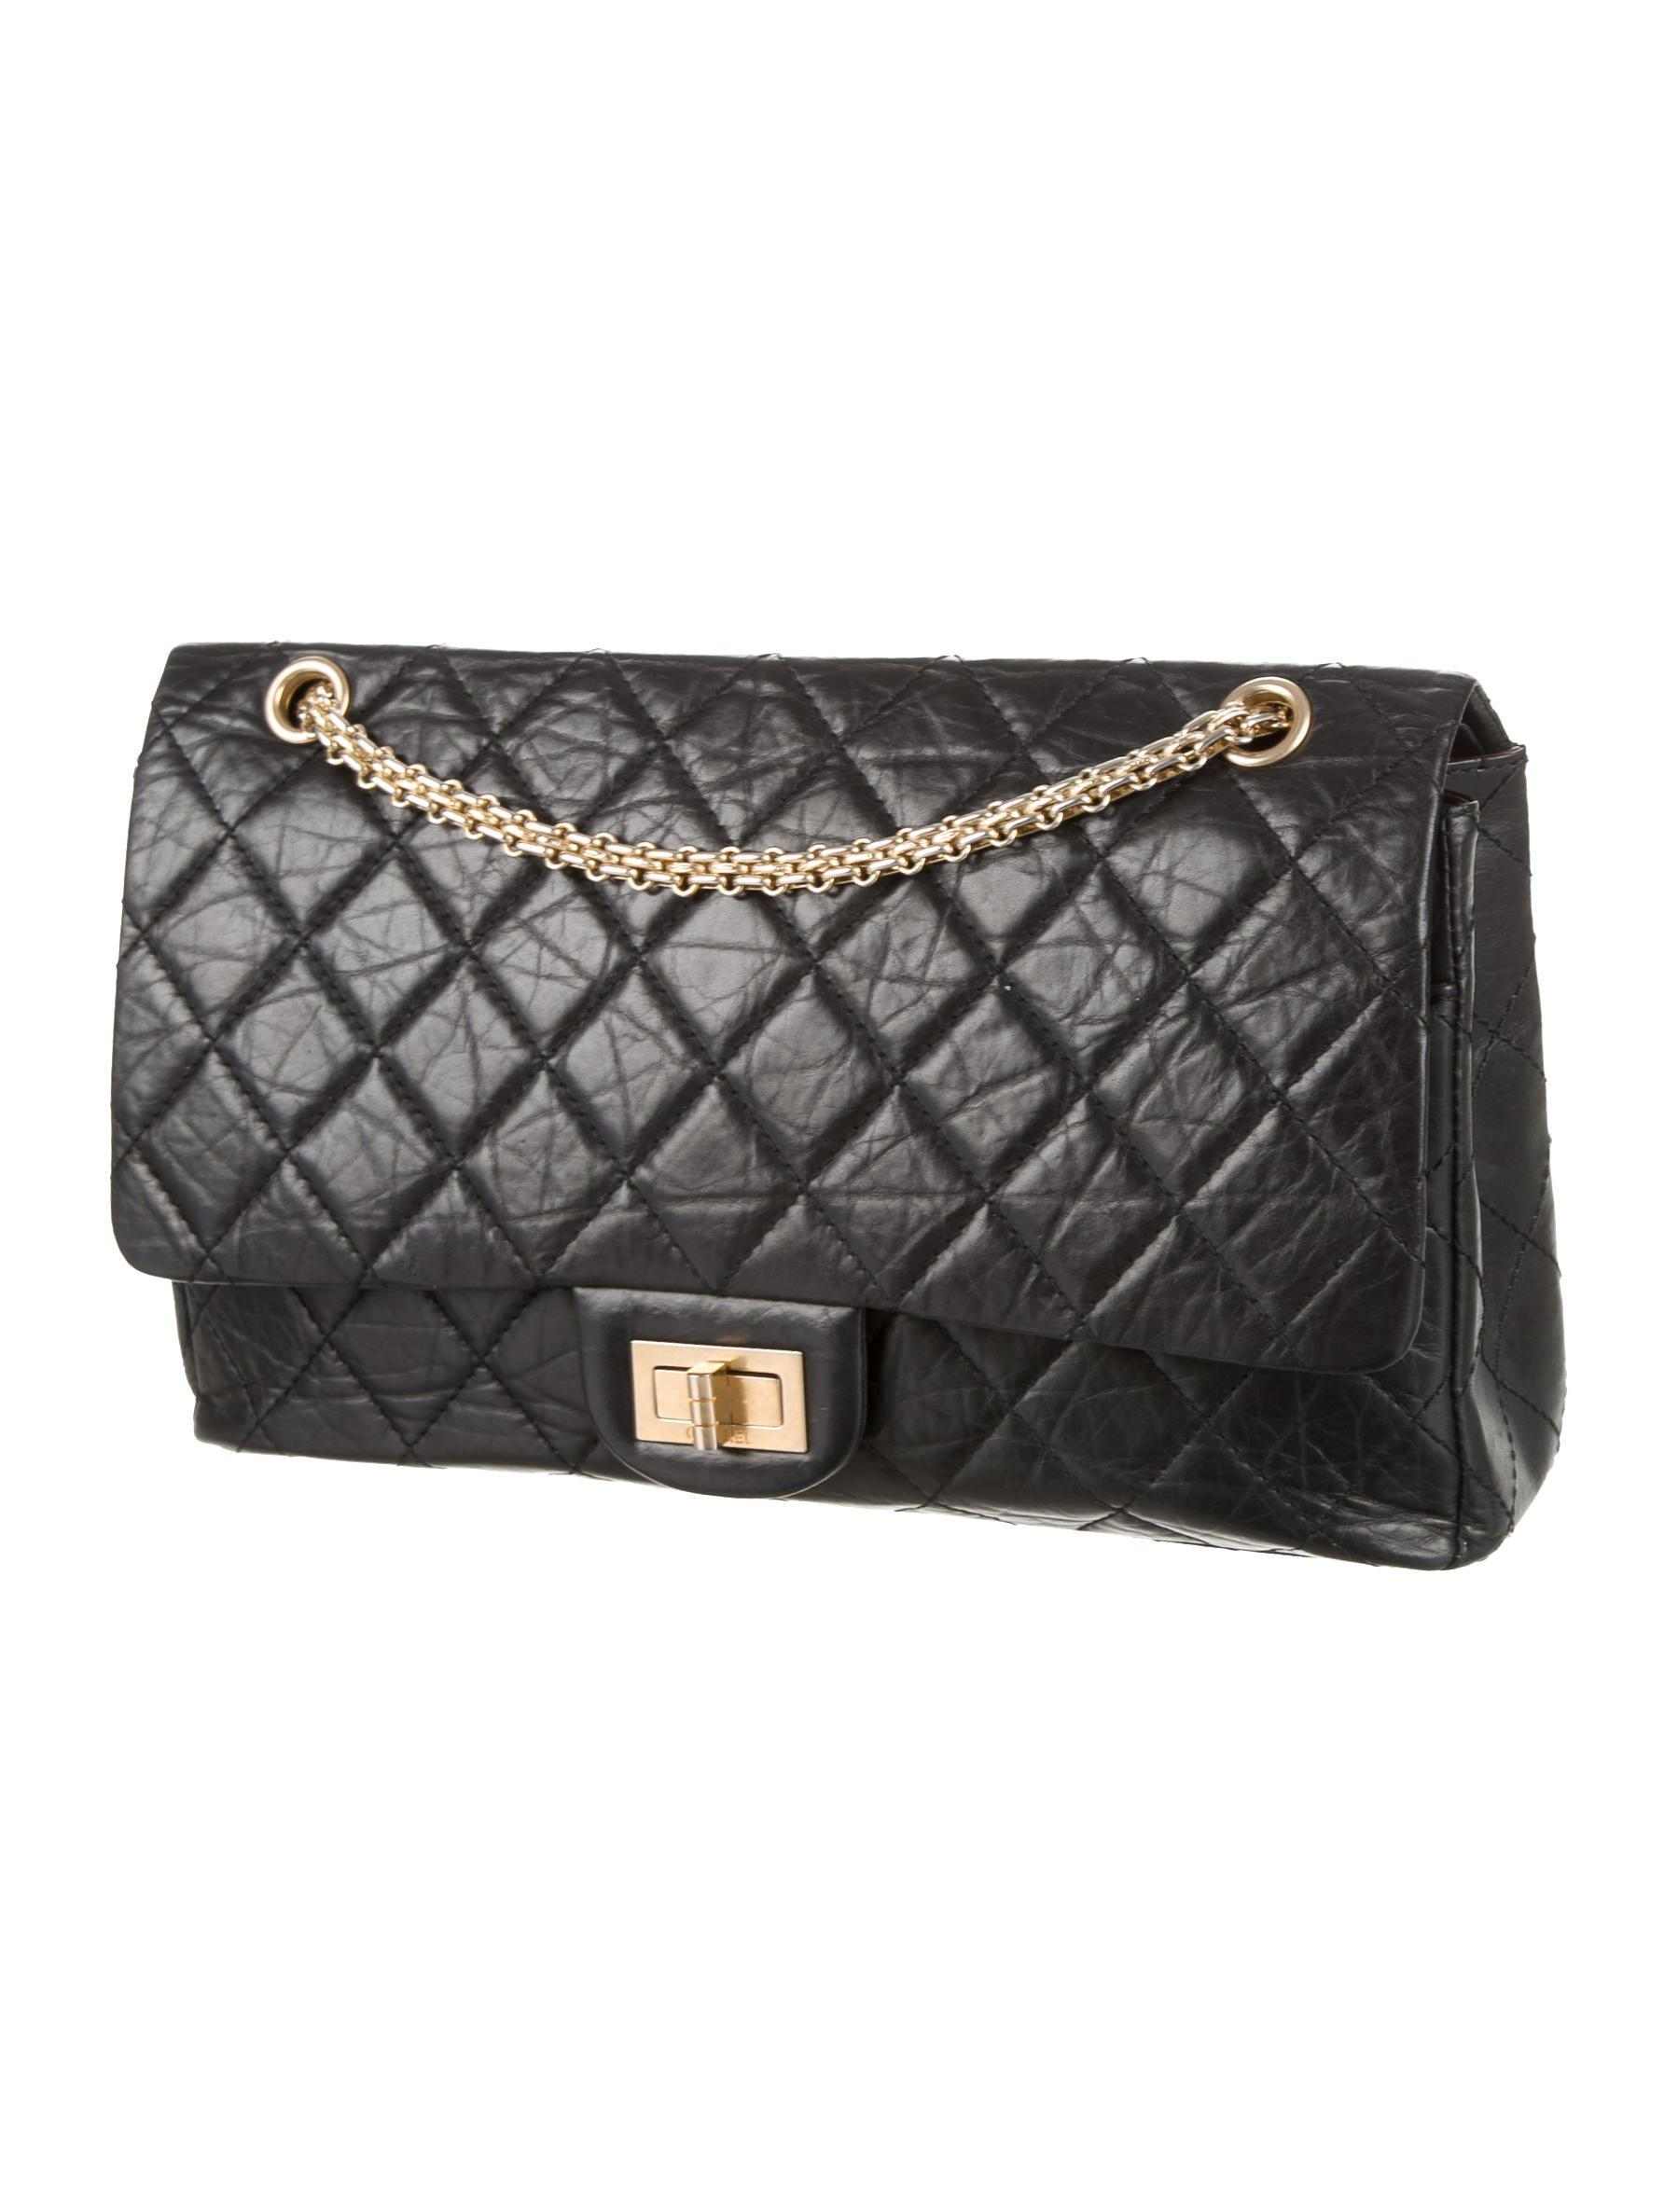 7955208cd962 Lyst - Chanel Anniversary 2.55 Reissue 227 Flap Bag Black in Metallic